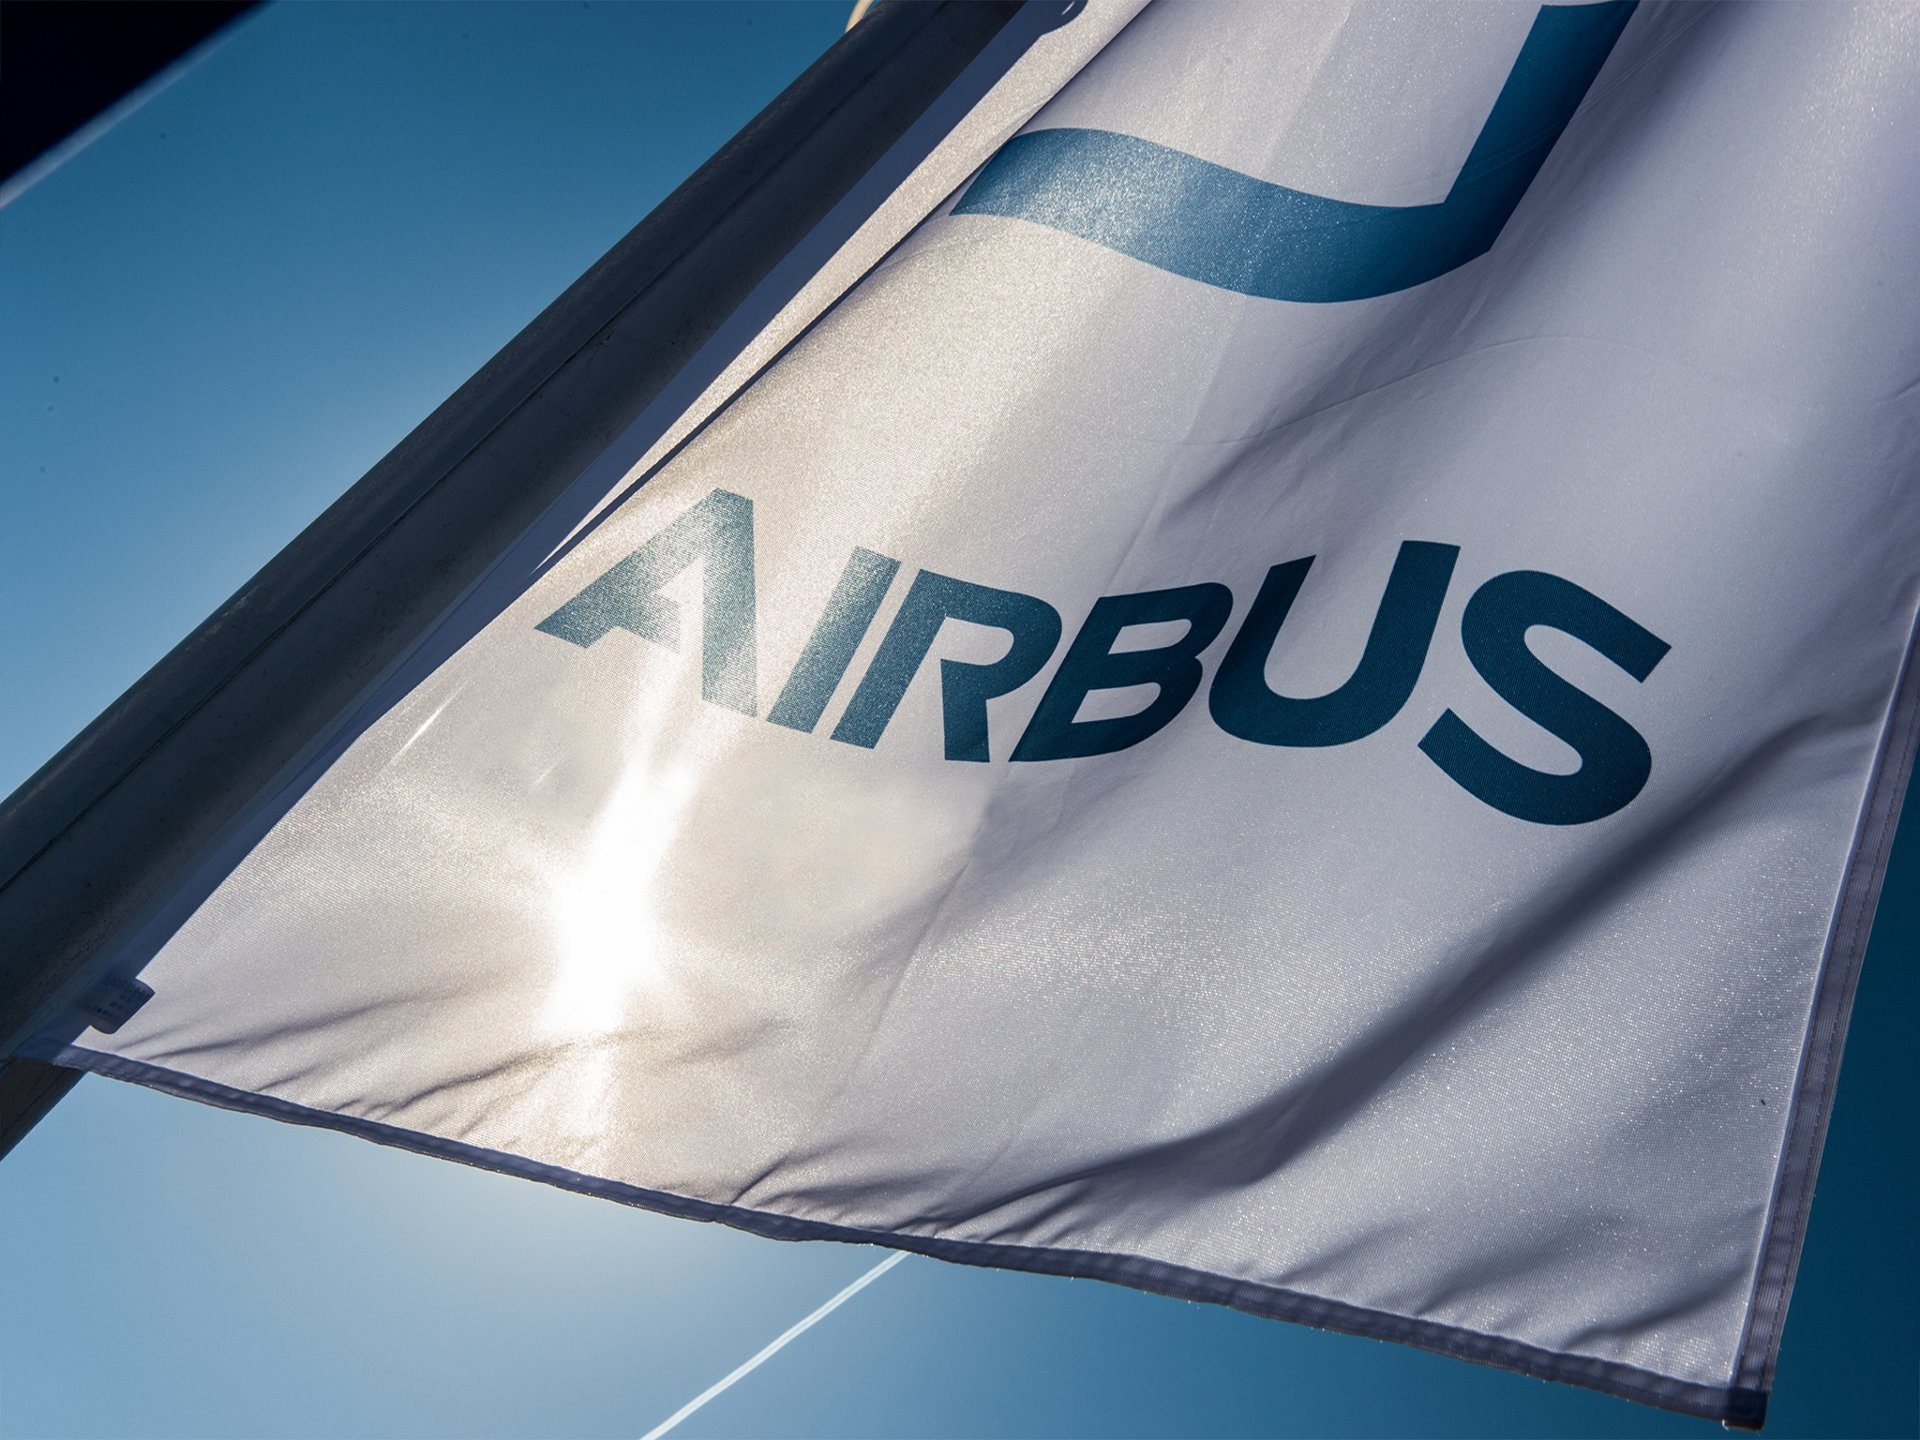 Airbus appoints new Executive Committee led by CEO Guillaume Faury